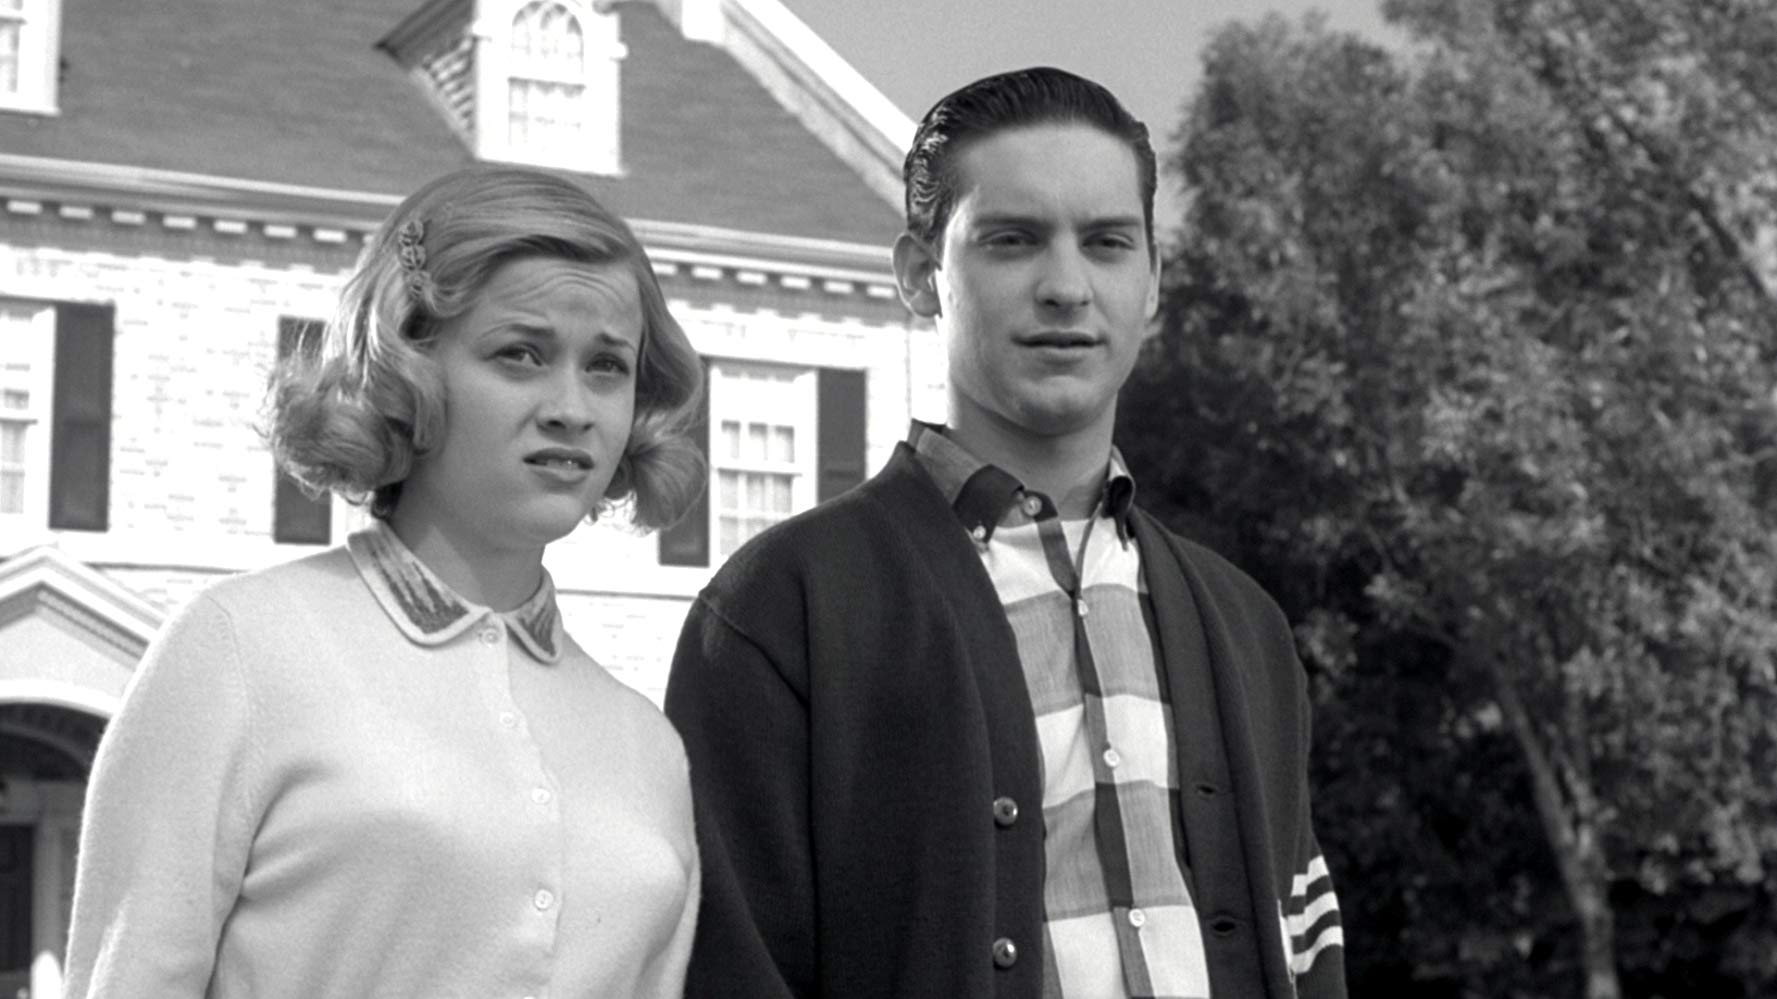 Reese Witherspoon, Tobey Maguire in Pleasantville (1998)